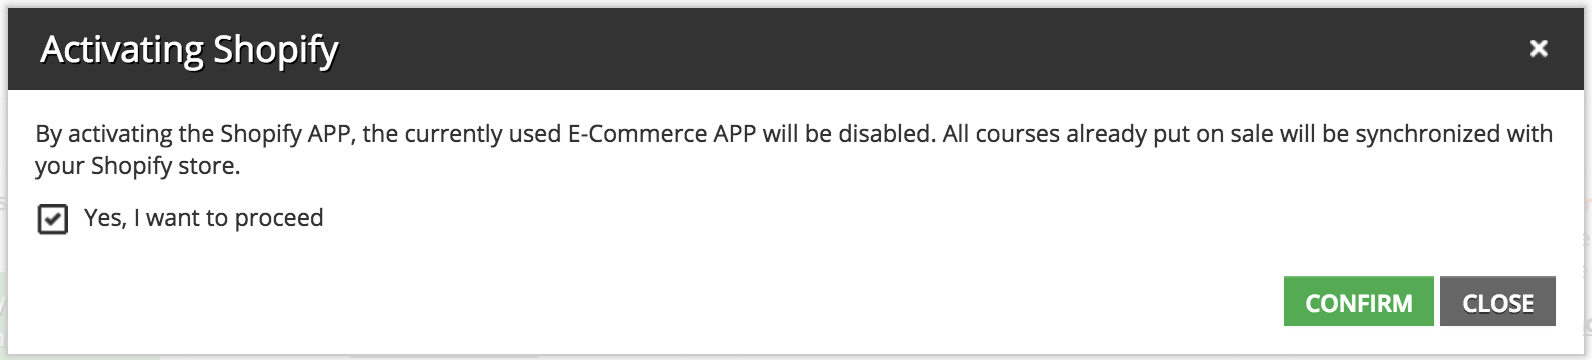 disable ecomm message